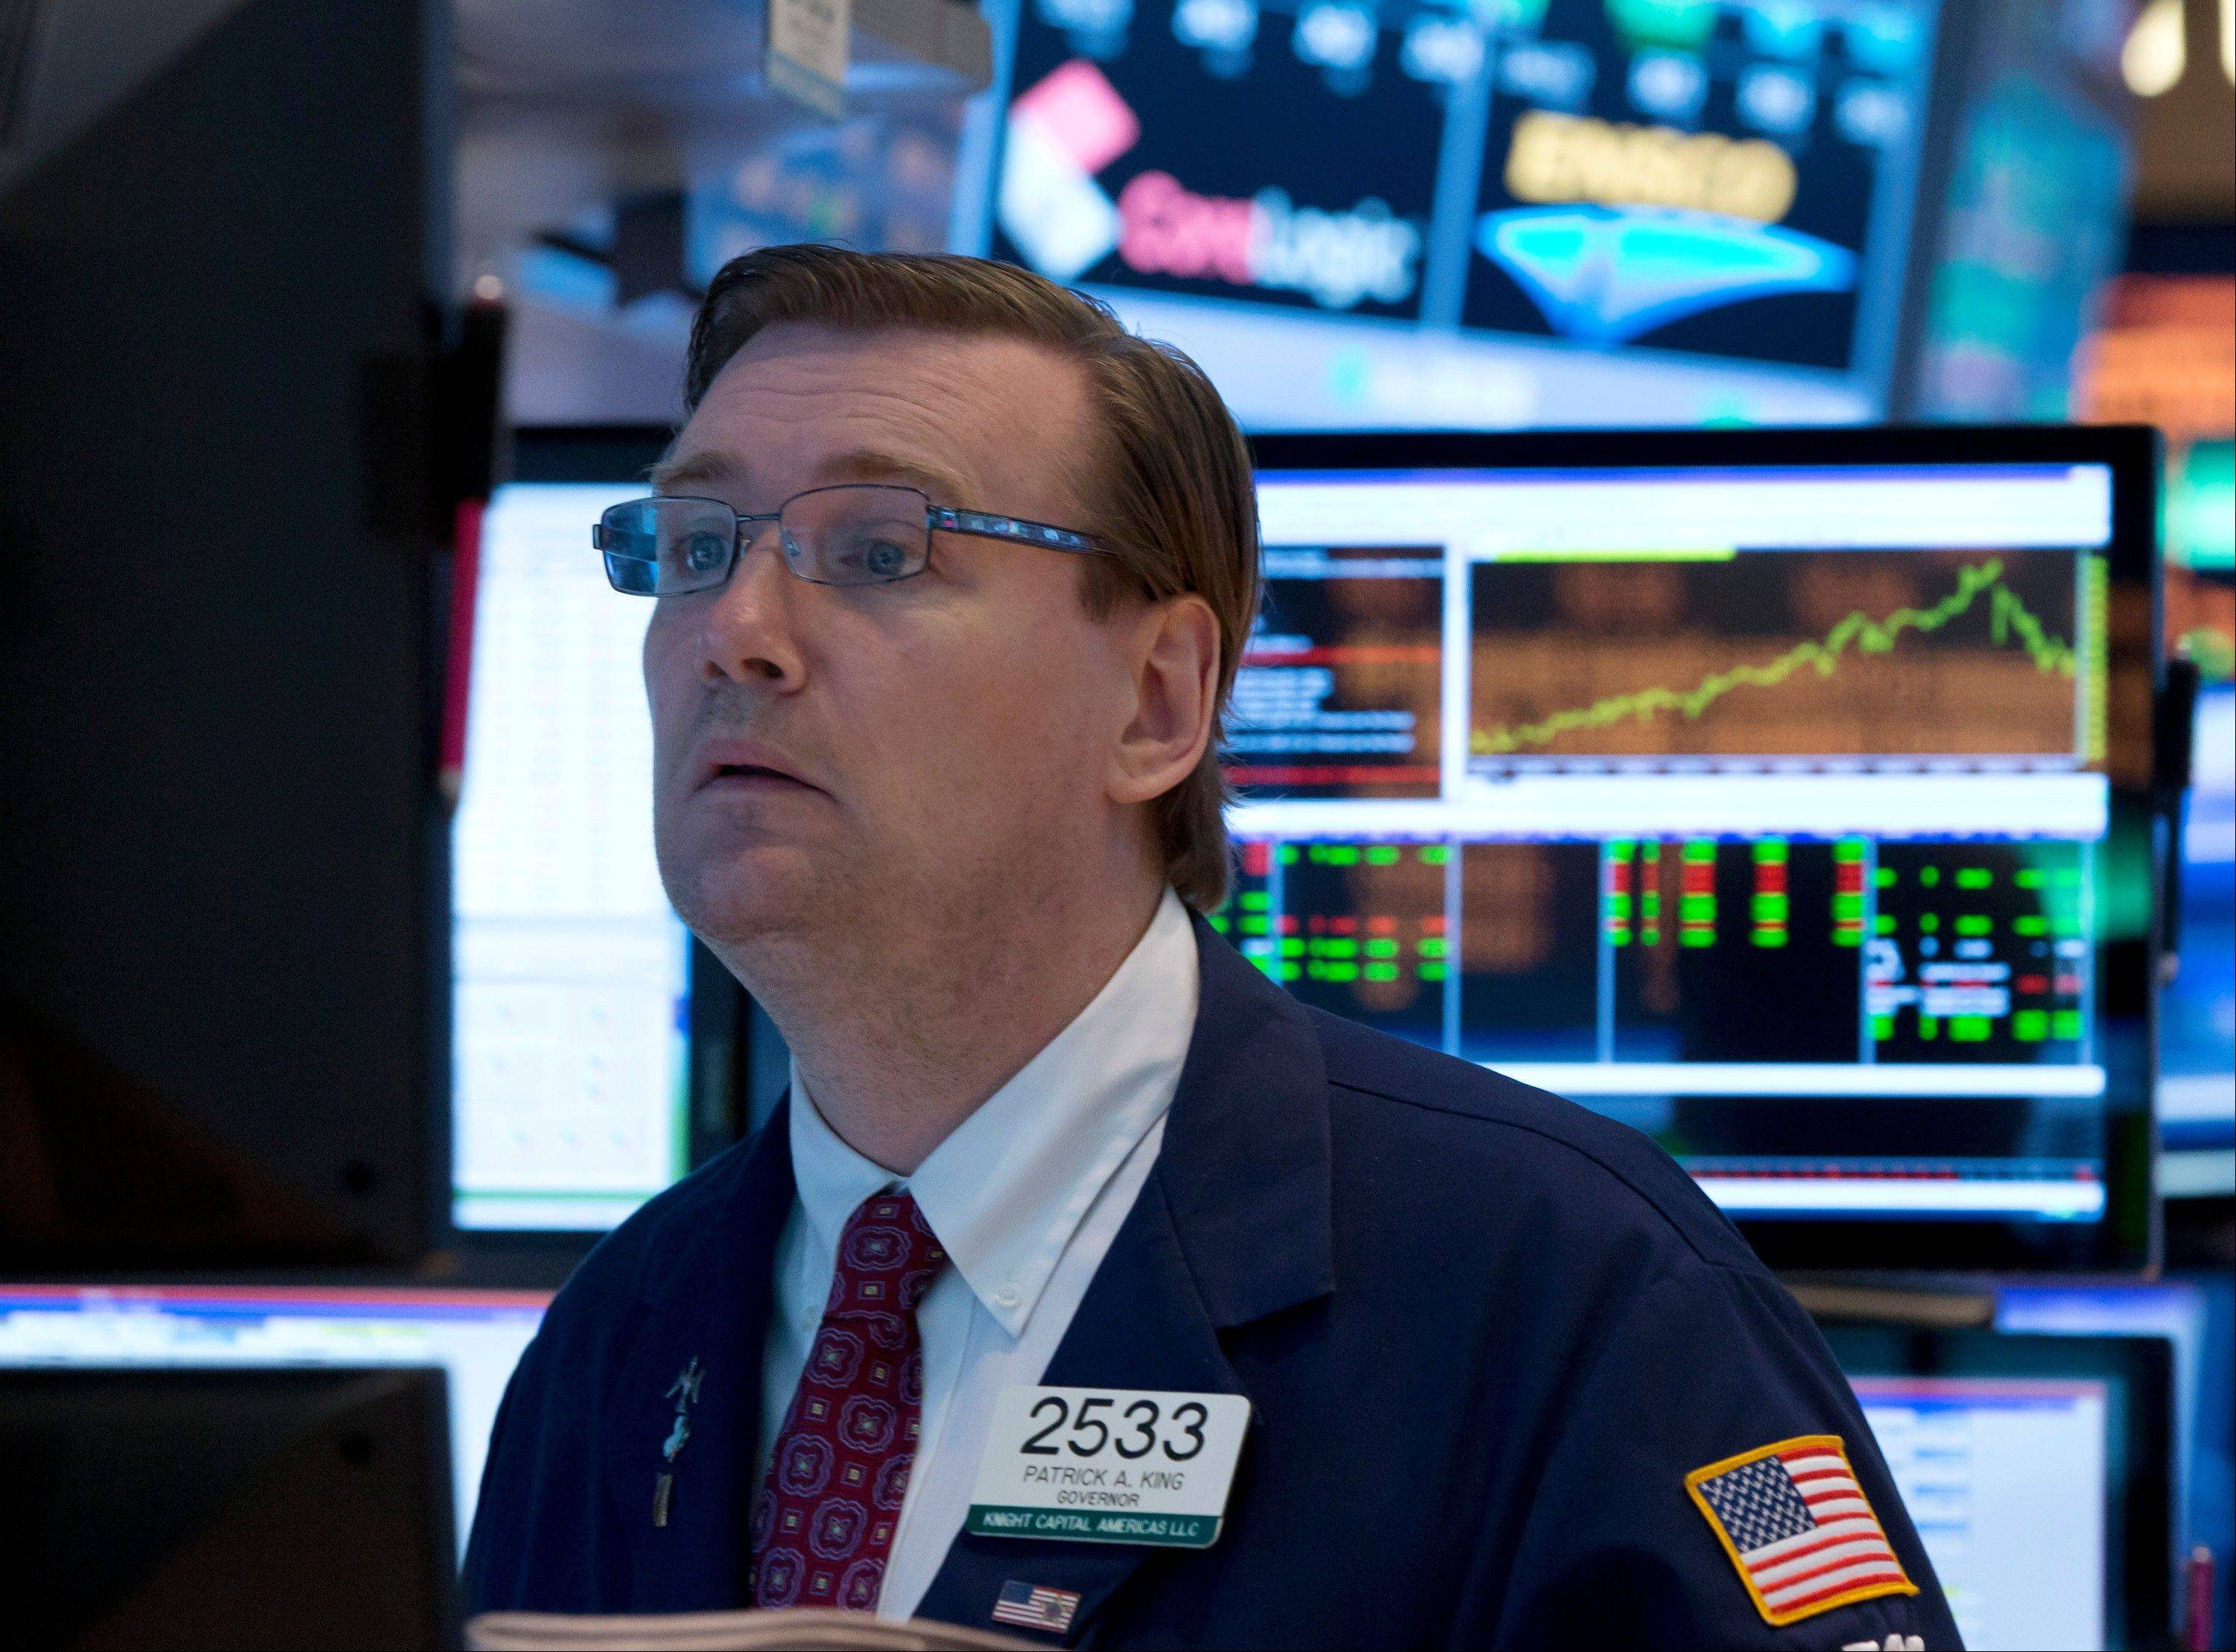 U.S. stocks rose for a second day, pushing the Standard & Poor�s 500 Index to its highest in June, as investors awaited the outcome of a Federal Reserve policy meeting for clues to the central bank�s plan for stimulus.